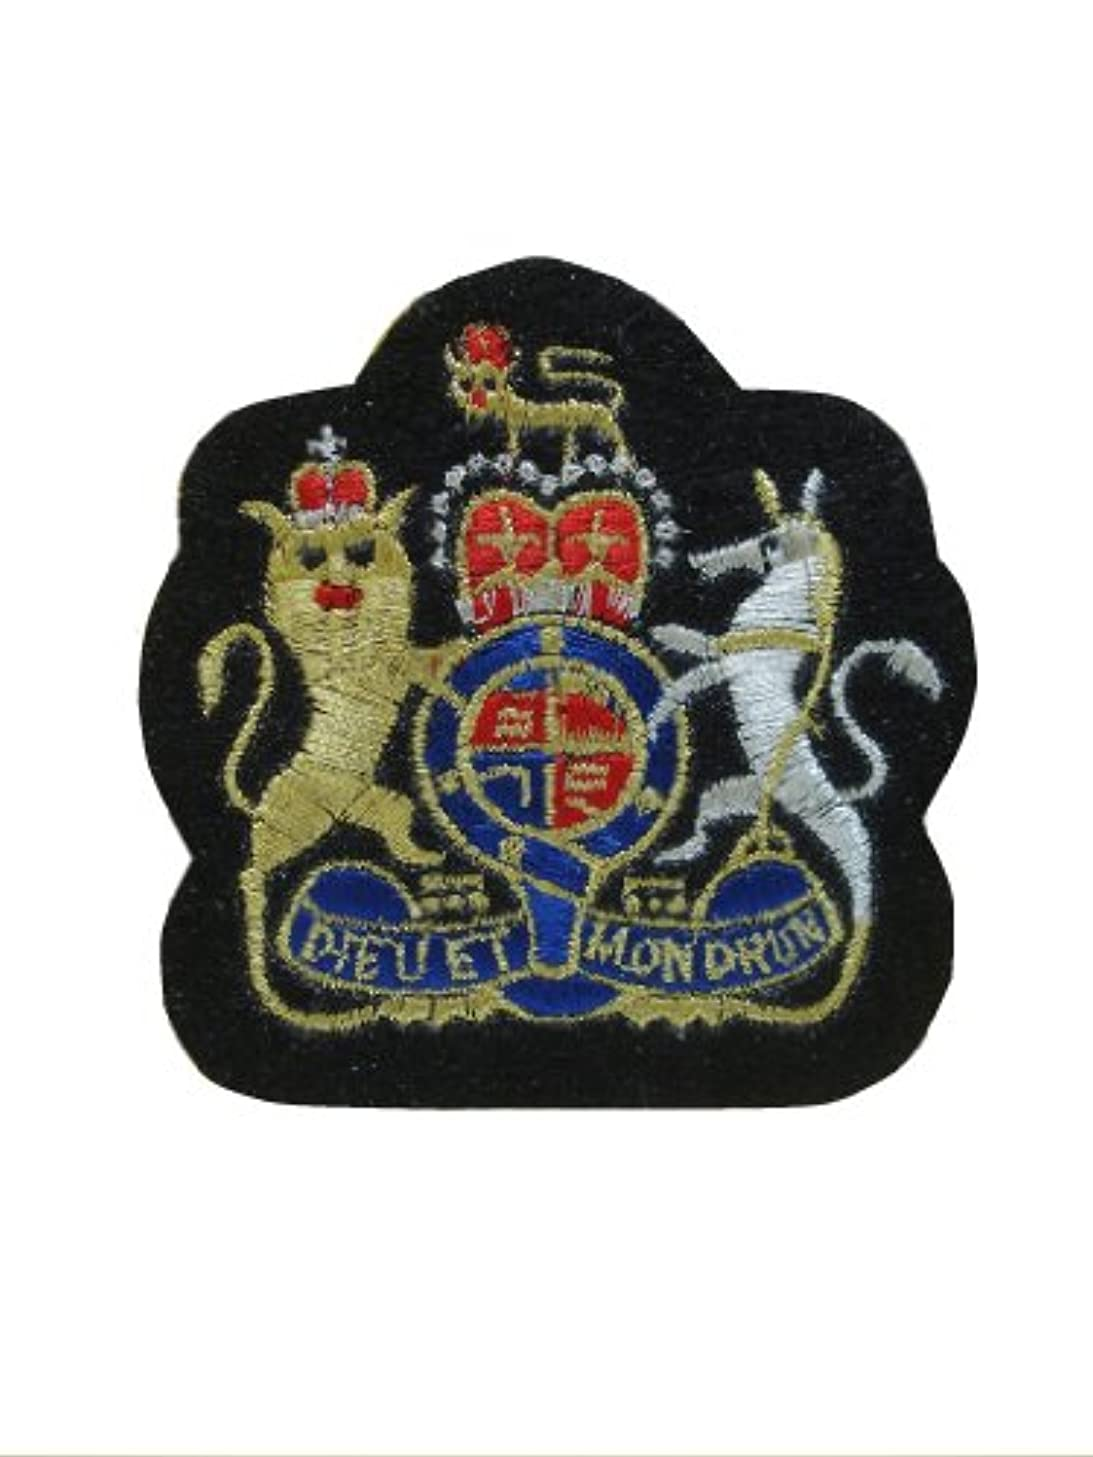 CREST EMBLEM Iron On Patch Embroidered Motif Biker Applique Heraldic Insignia Badge Decal 2.8 x 2.7 inches (7 x 6.8 cm)